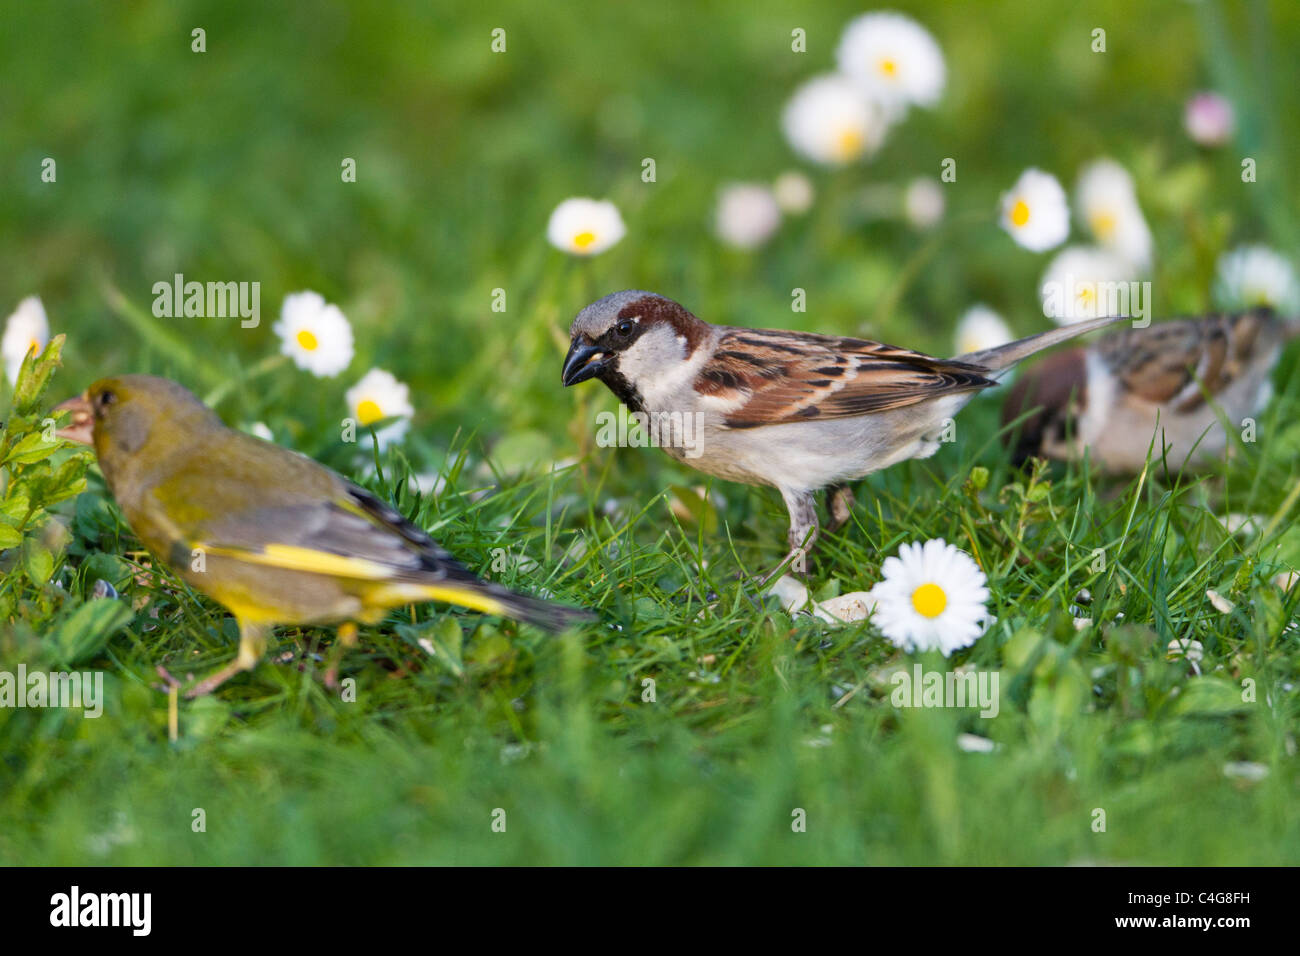 House Sparrow (Passer domesticus), male feeding on lawn in garden with other birds, Lower Saxony, Germany - Stock Image